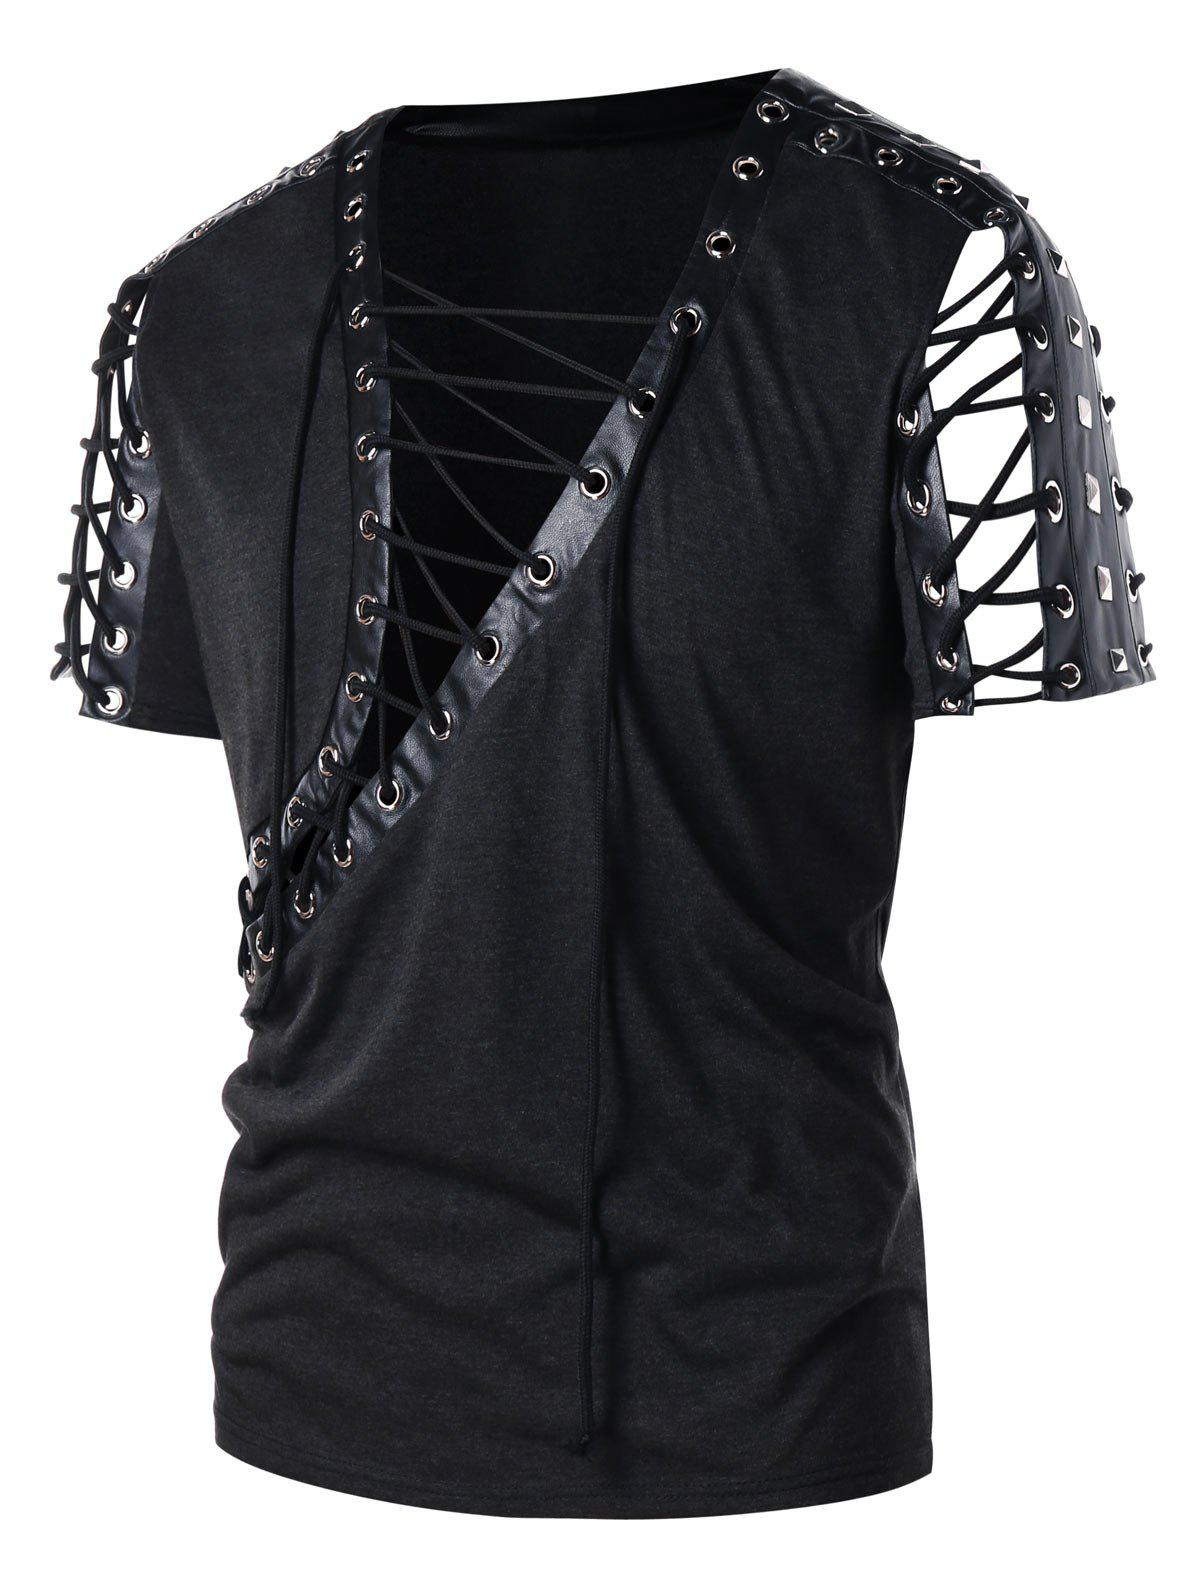 Latest Lace Up PU Leather Panel Rivet T-shirt